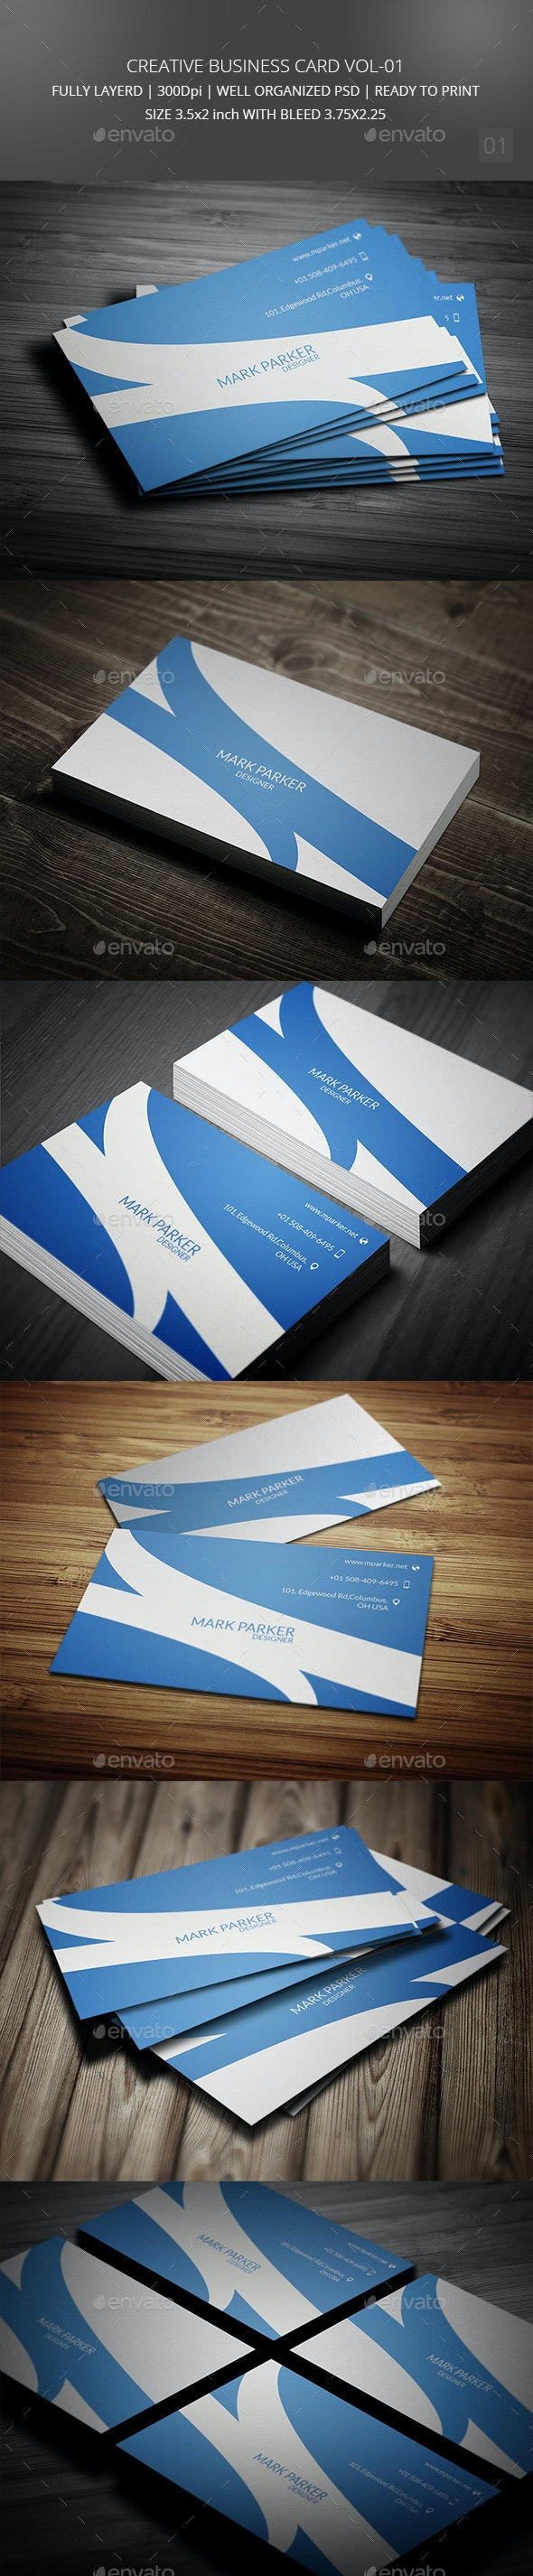 Creative Business Card Vol-01 - Corporate Business Cards